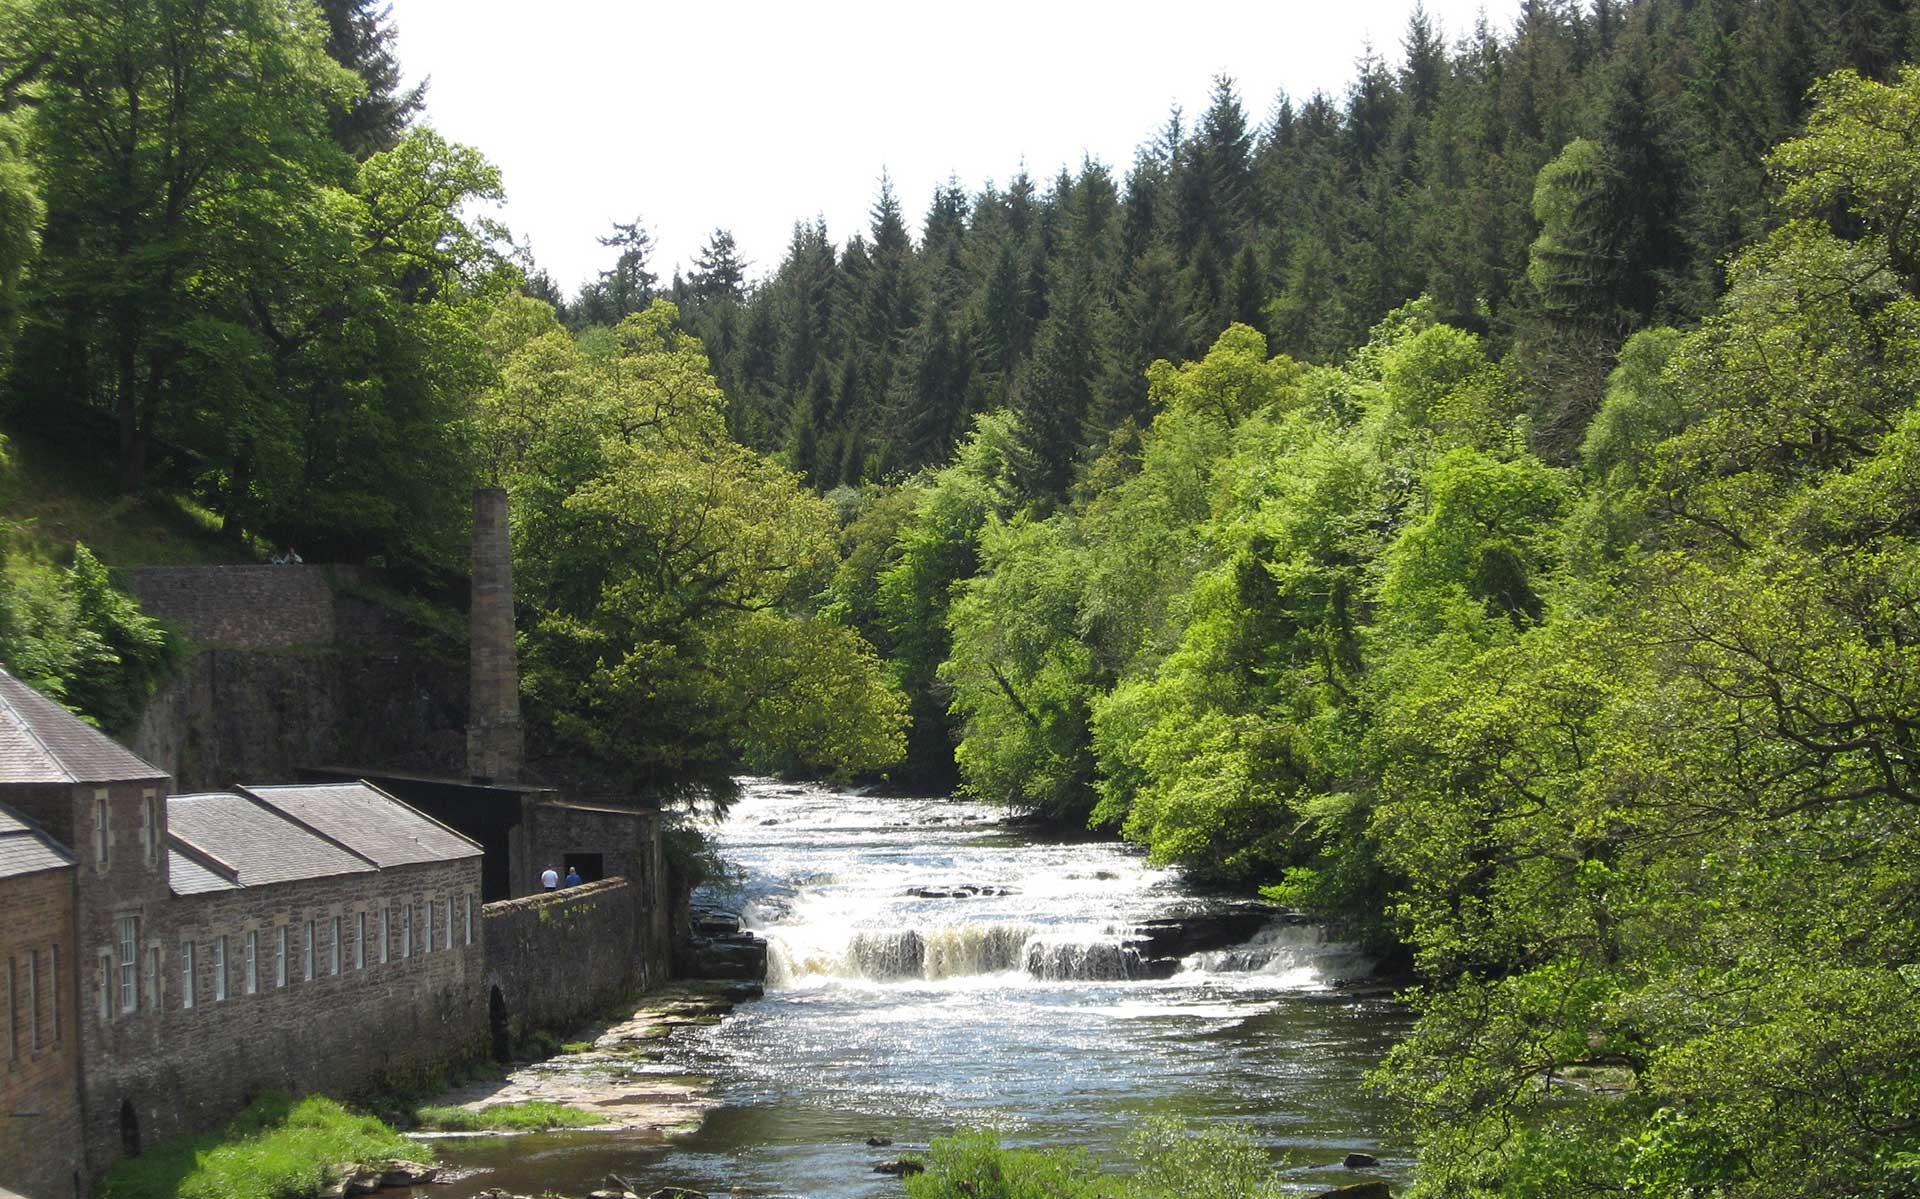 Lanarkshire river in a forest